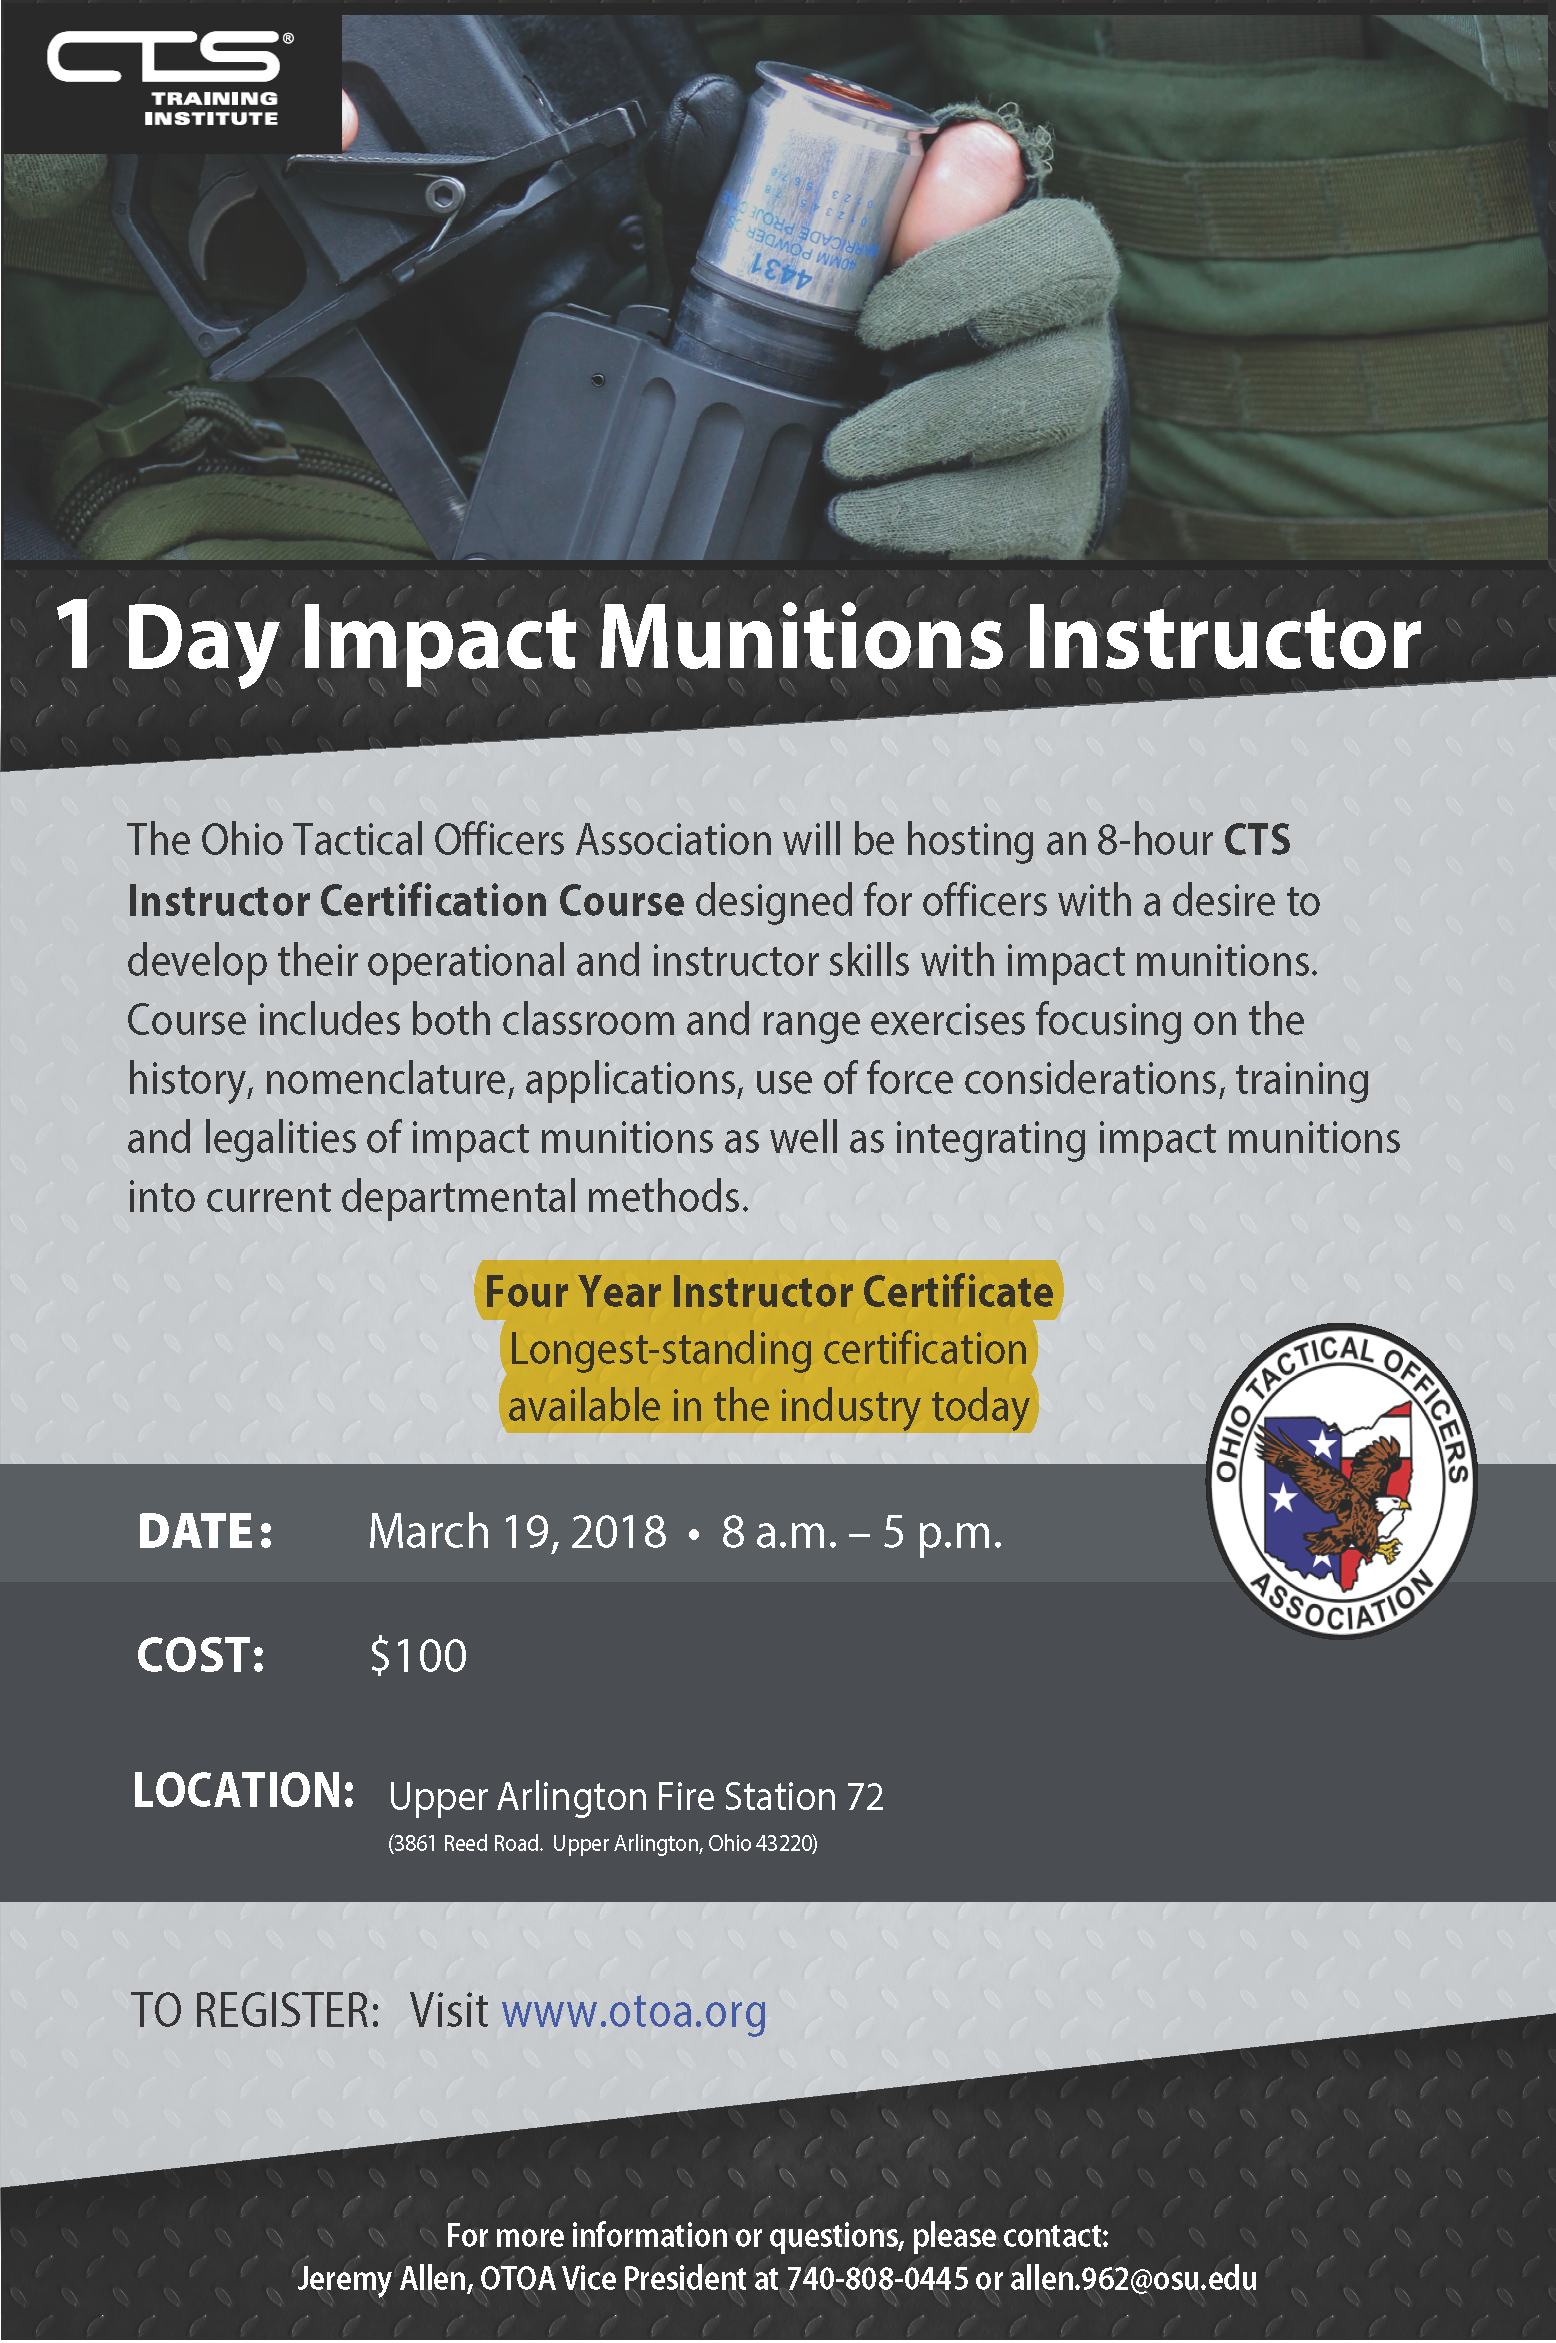 CTS Impact Munitions Instructor 1